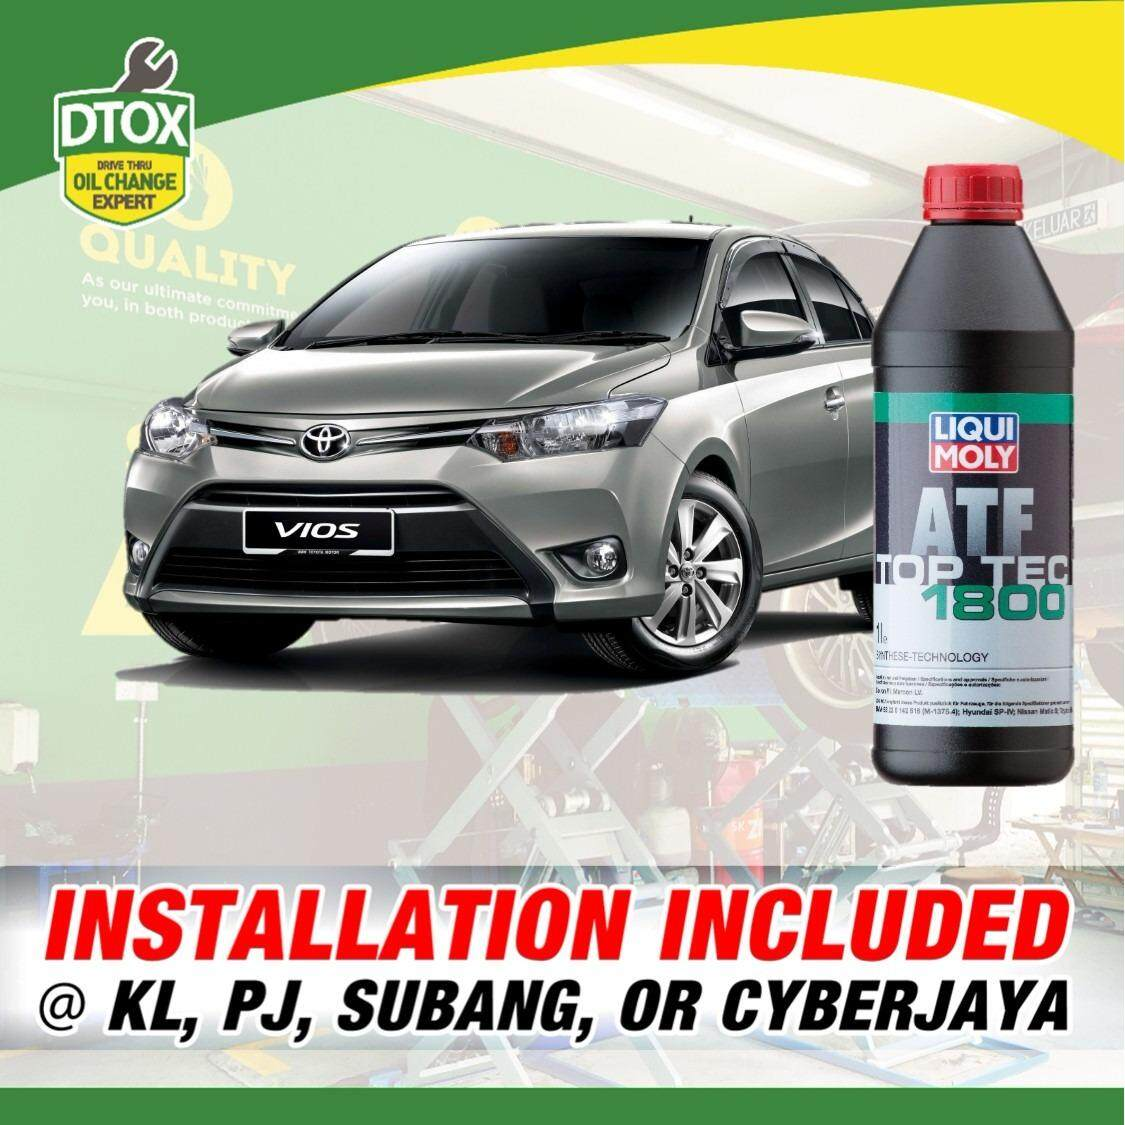 Atf Replacement Service For Vios 2nd / 3rd Gen (4 Liters) Using Liqui Moly Top Tec Atf 1800 By Dtox Car Service.